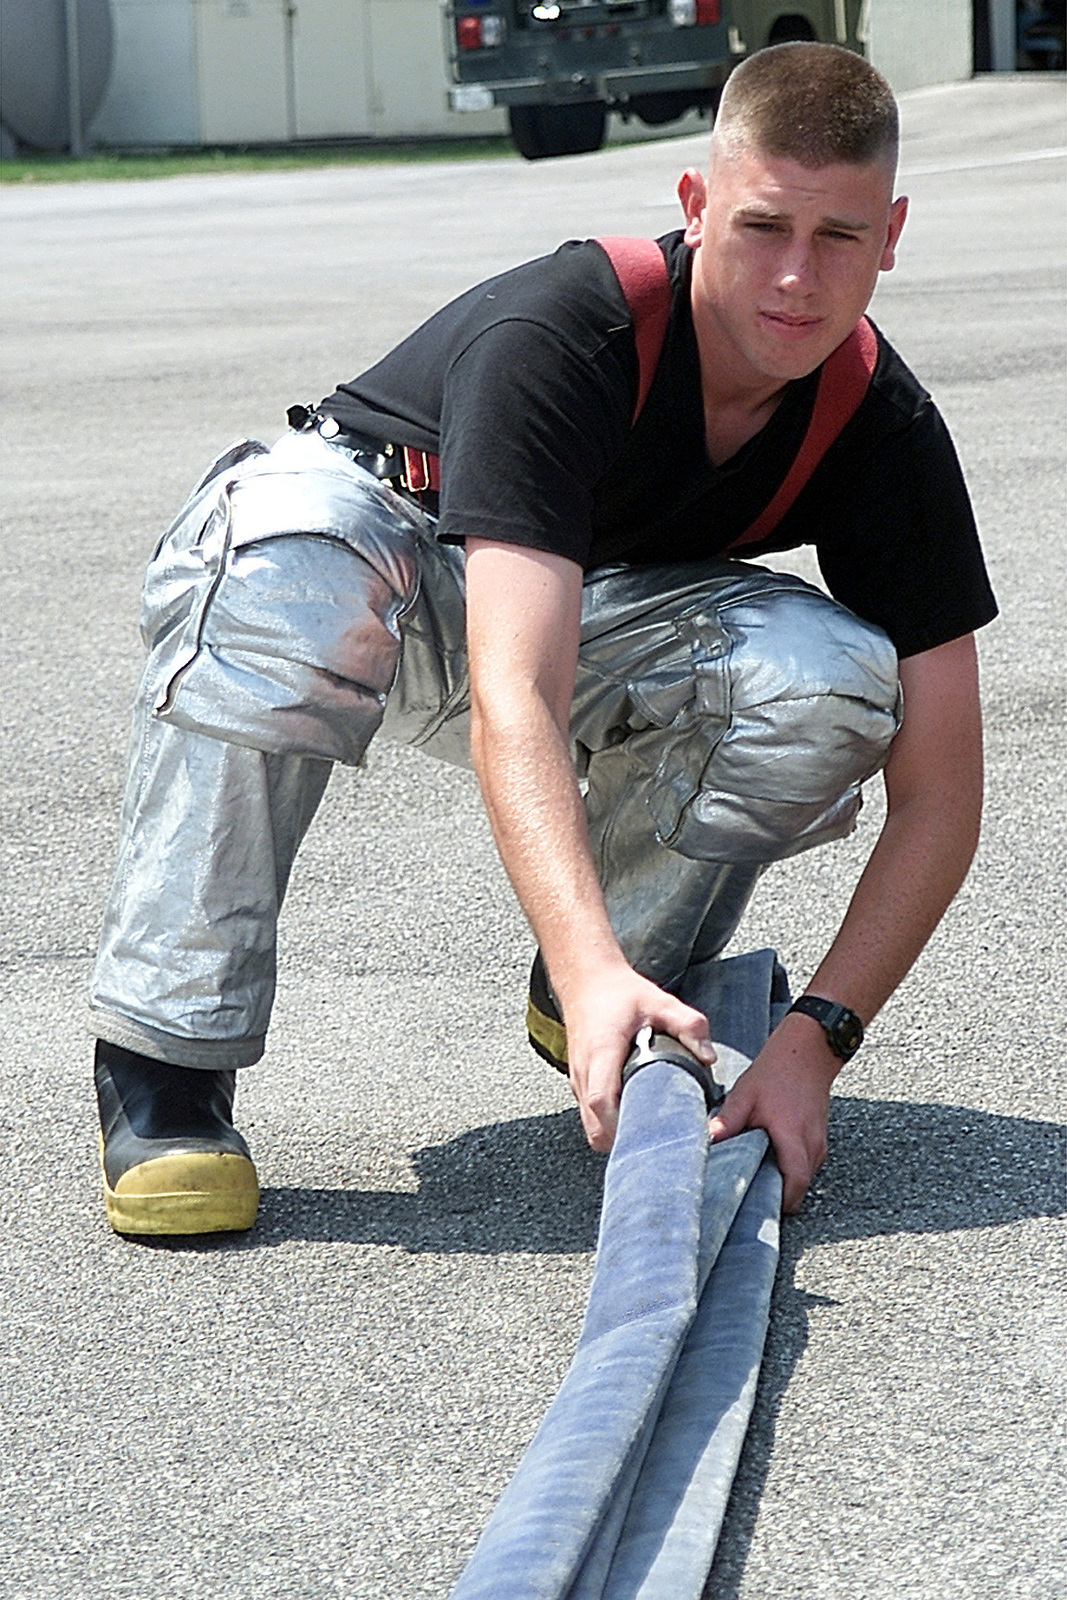 AIRMAN (AMN), James Burke, USAF, Fire Protection Specialists, 31ST Civil Engineer Squadron, Fire Protection Flight, prepares a fire hose for reloading after a fire fighters training course at Aviano AB, Italy